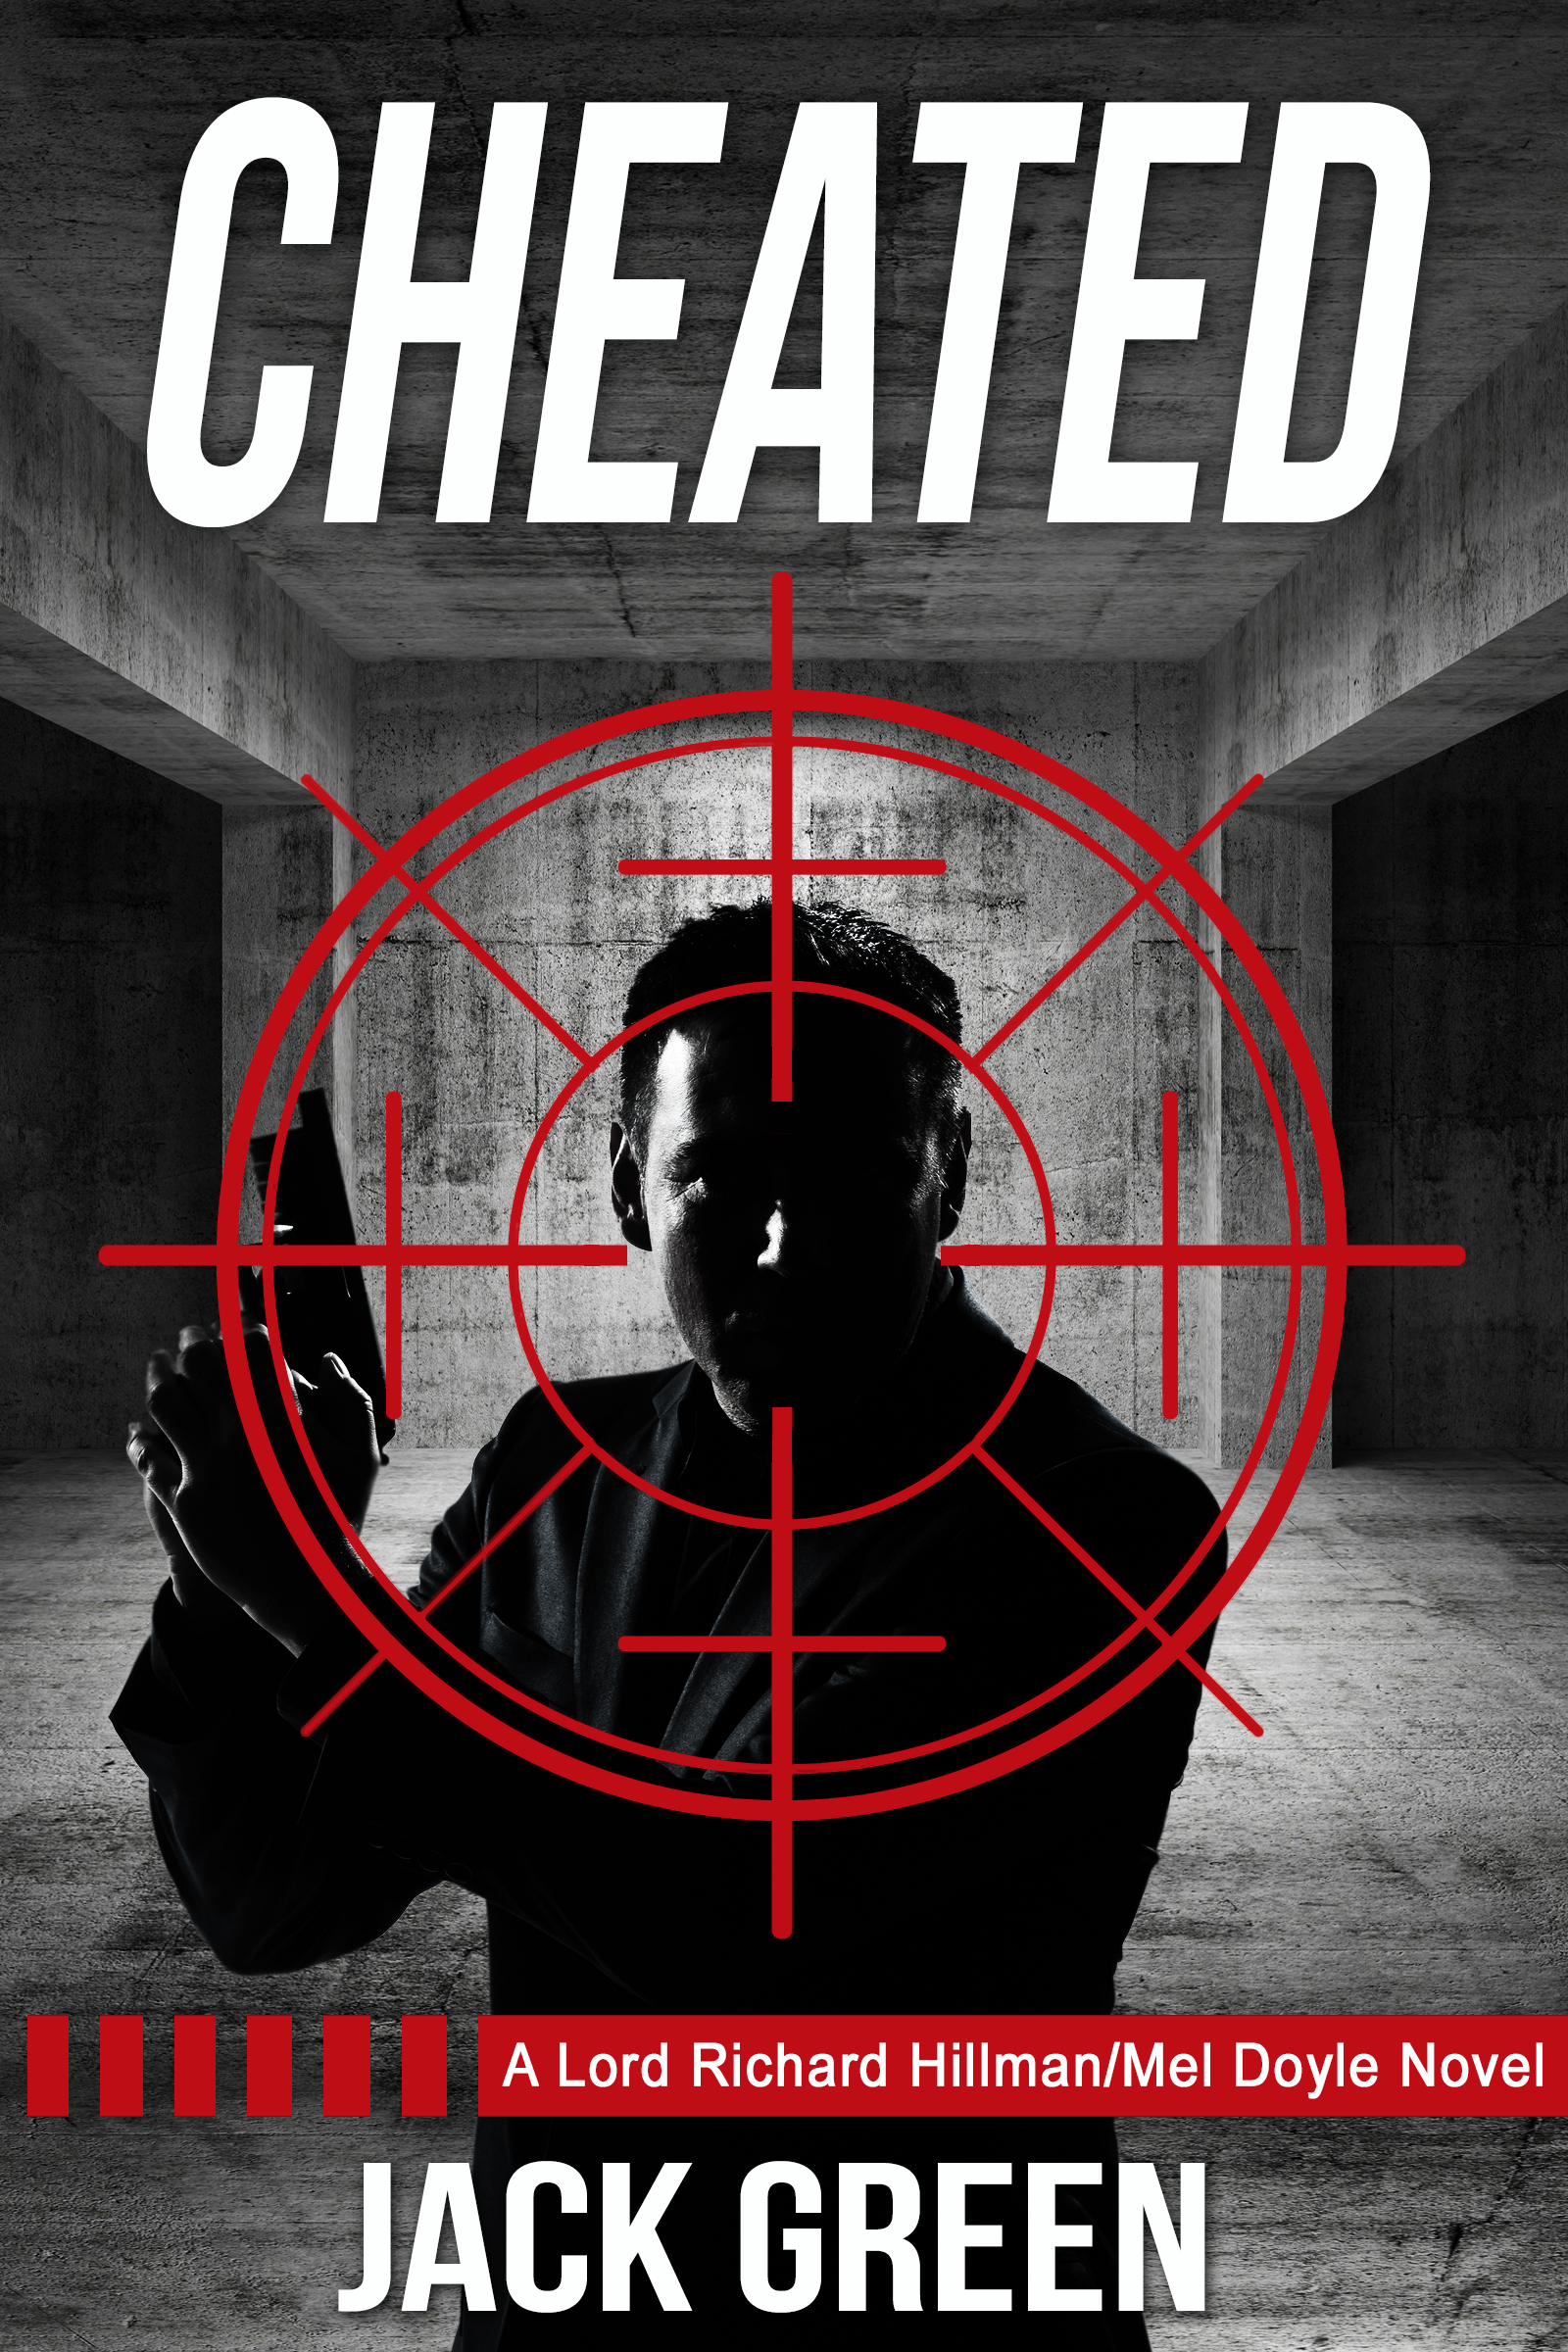 Cheated  by  Jack Green